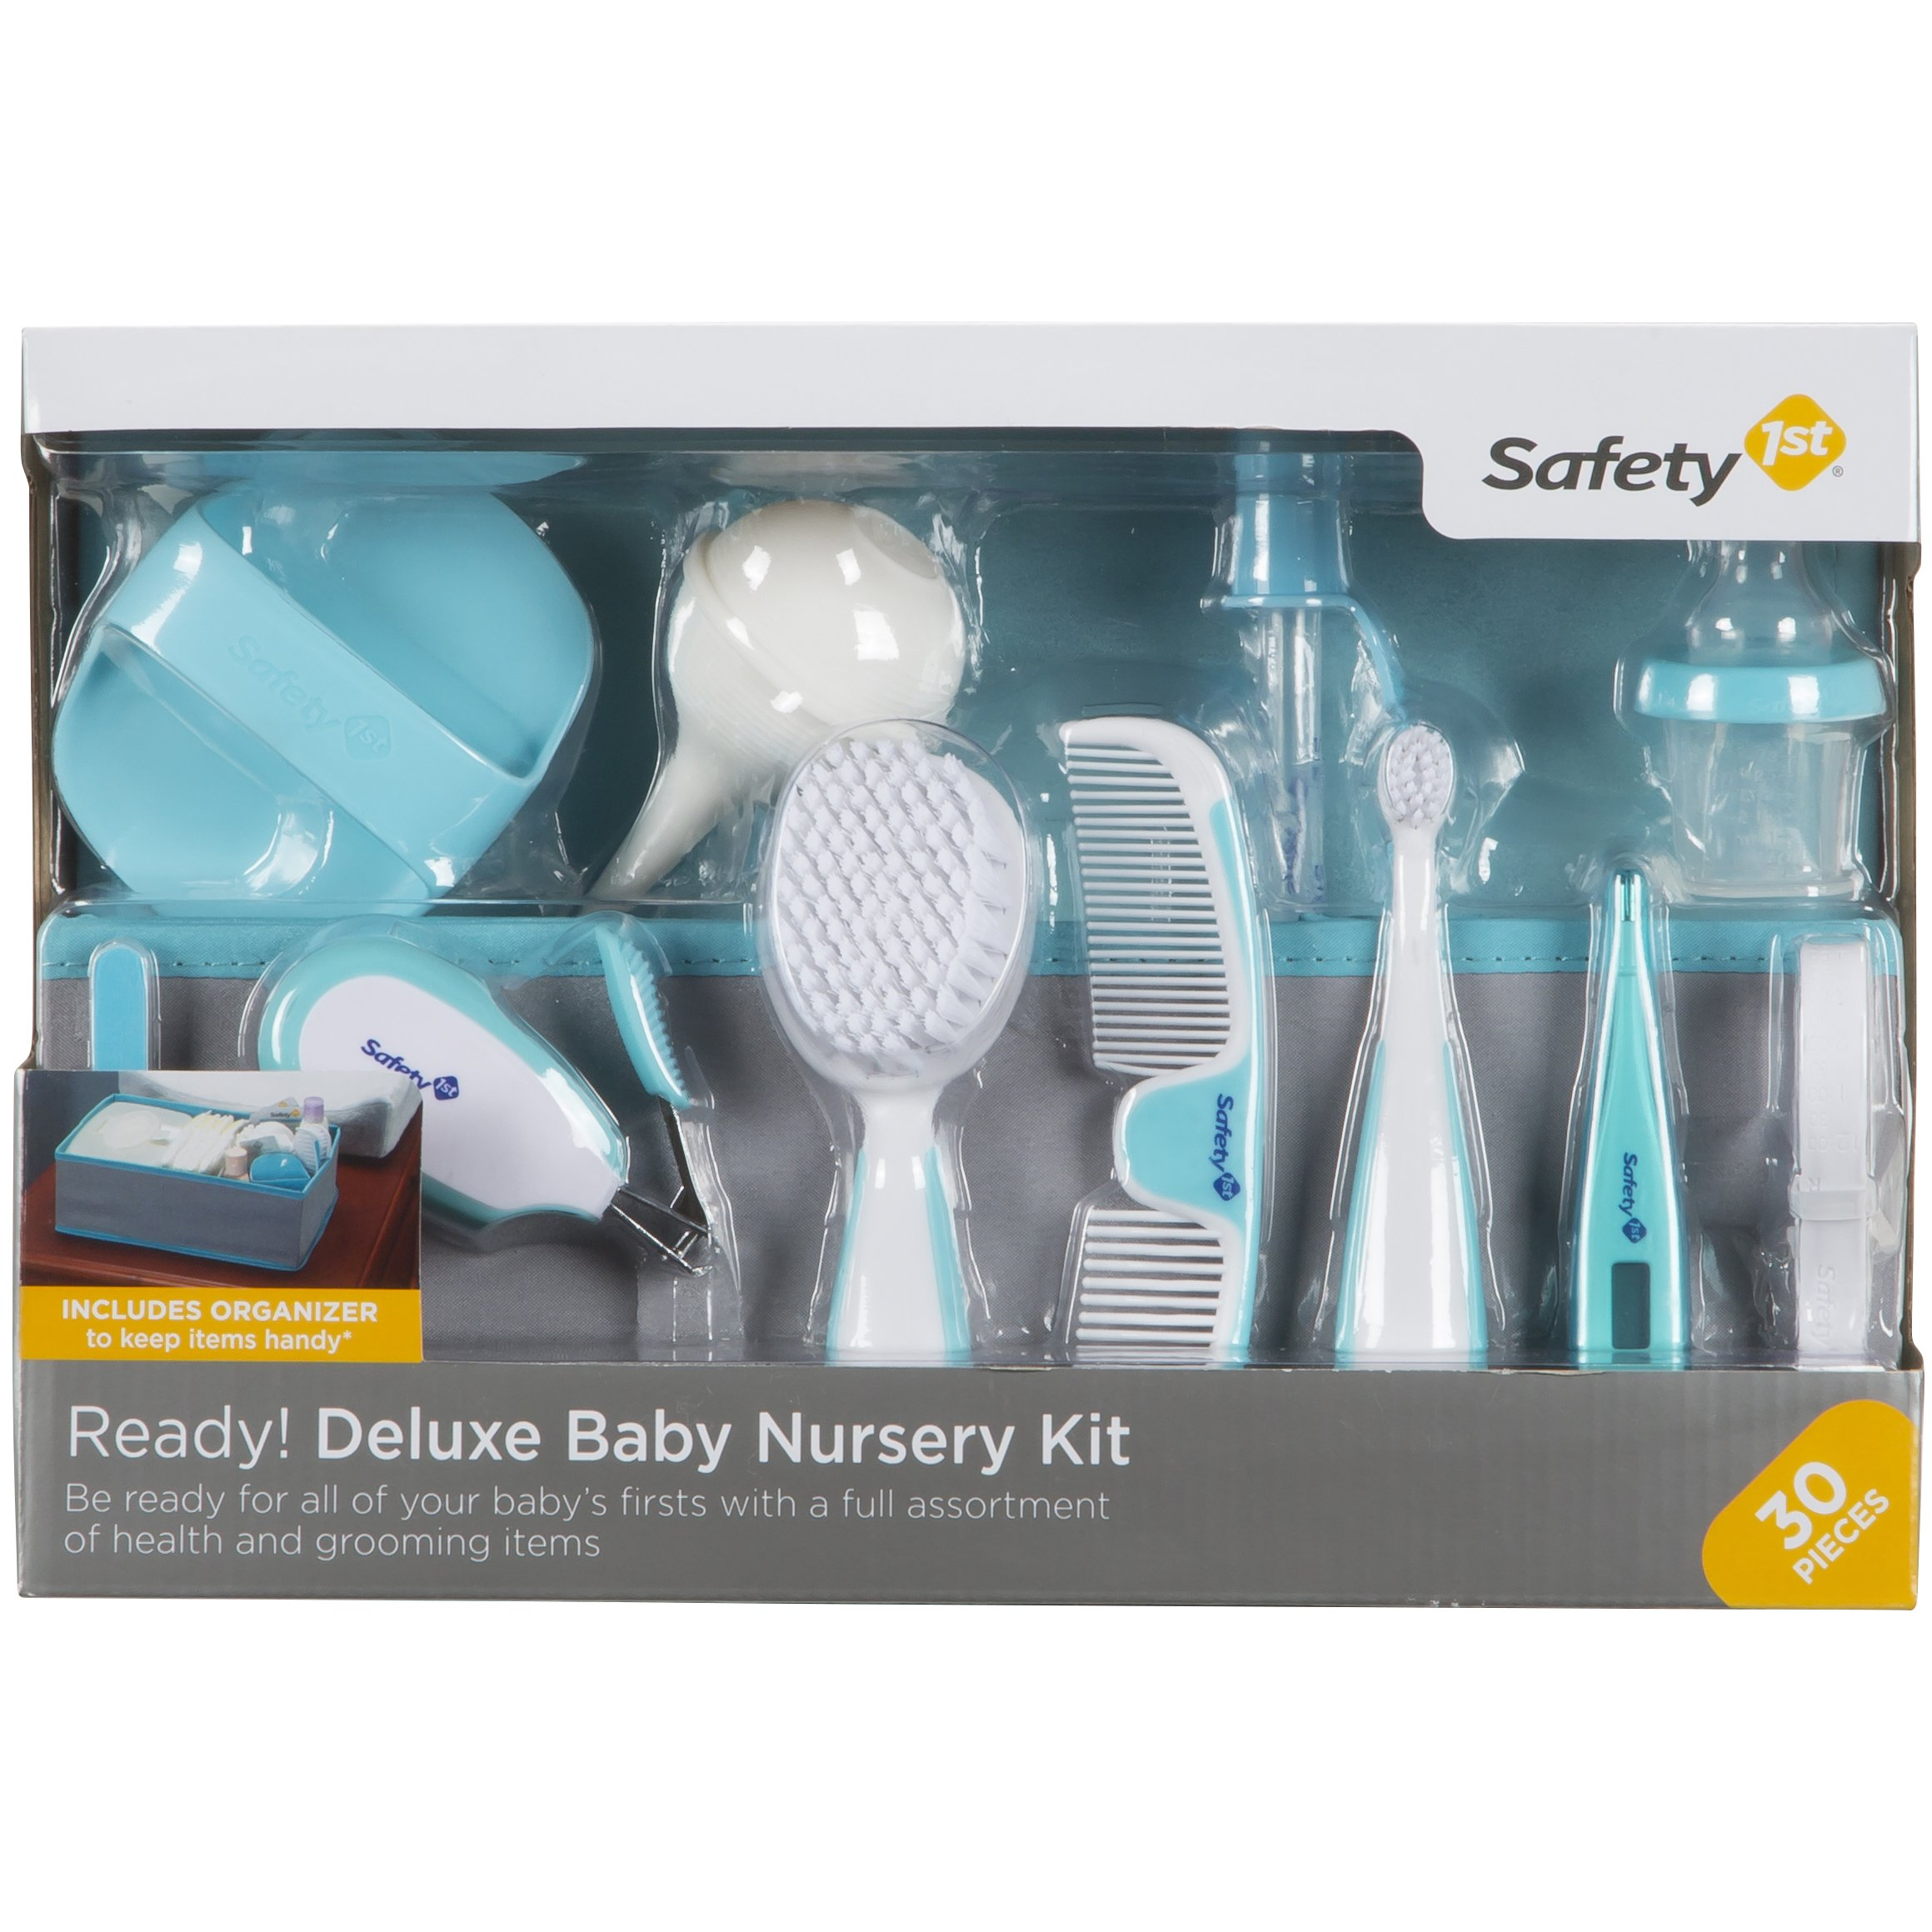 Safety 1st Ready! Deluxe Baby Nursery Kit, Little Lagoon by Safety 1st